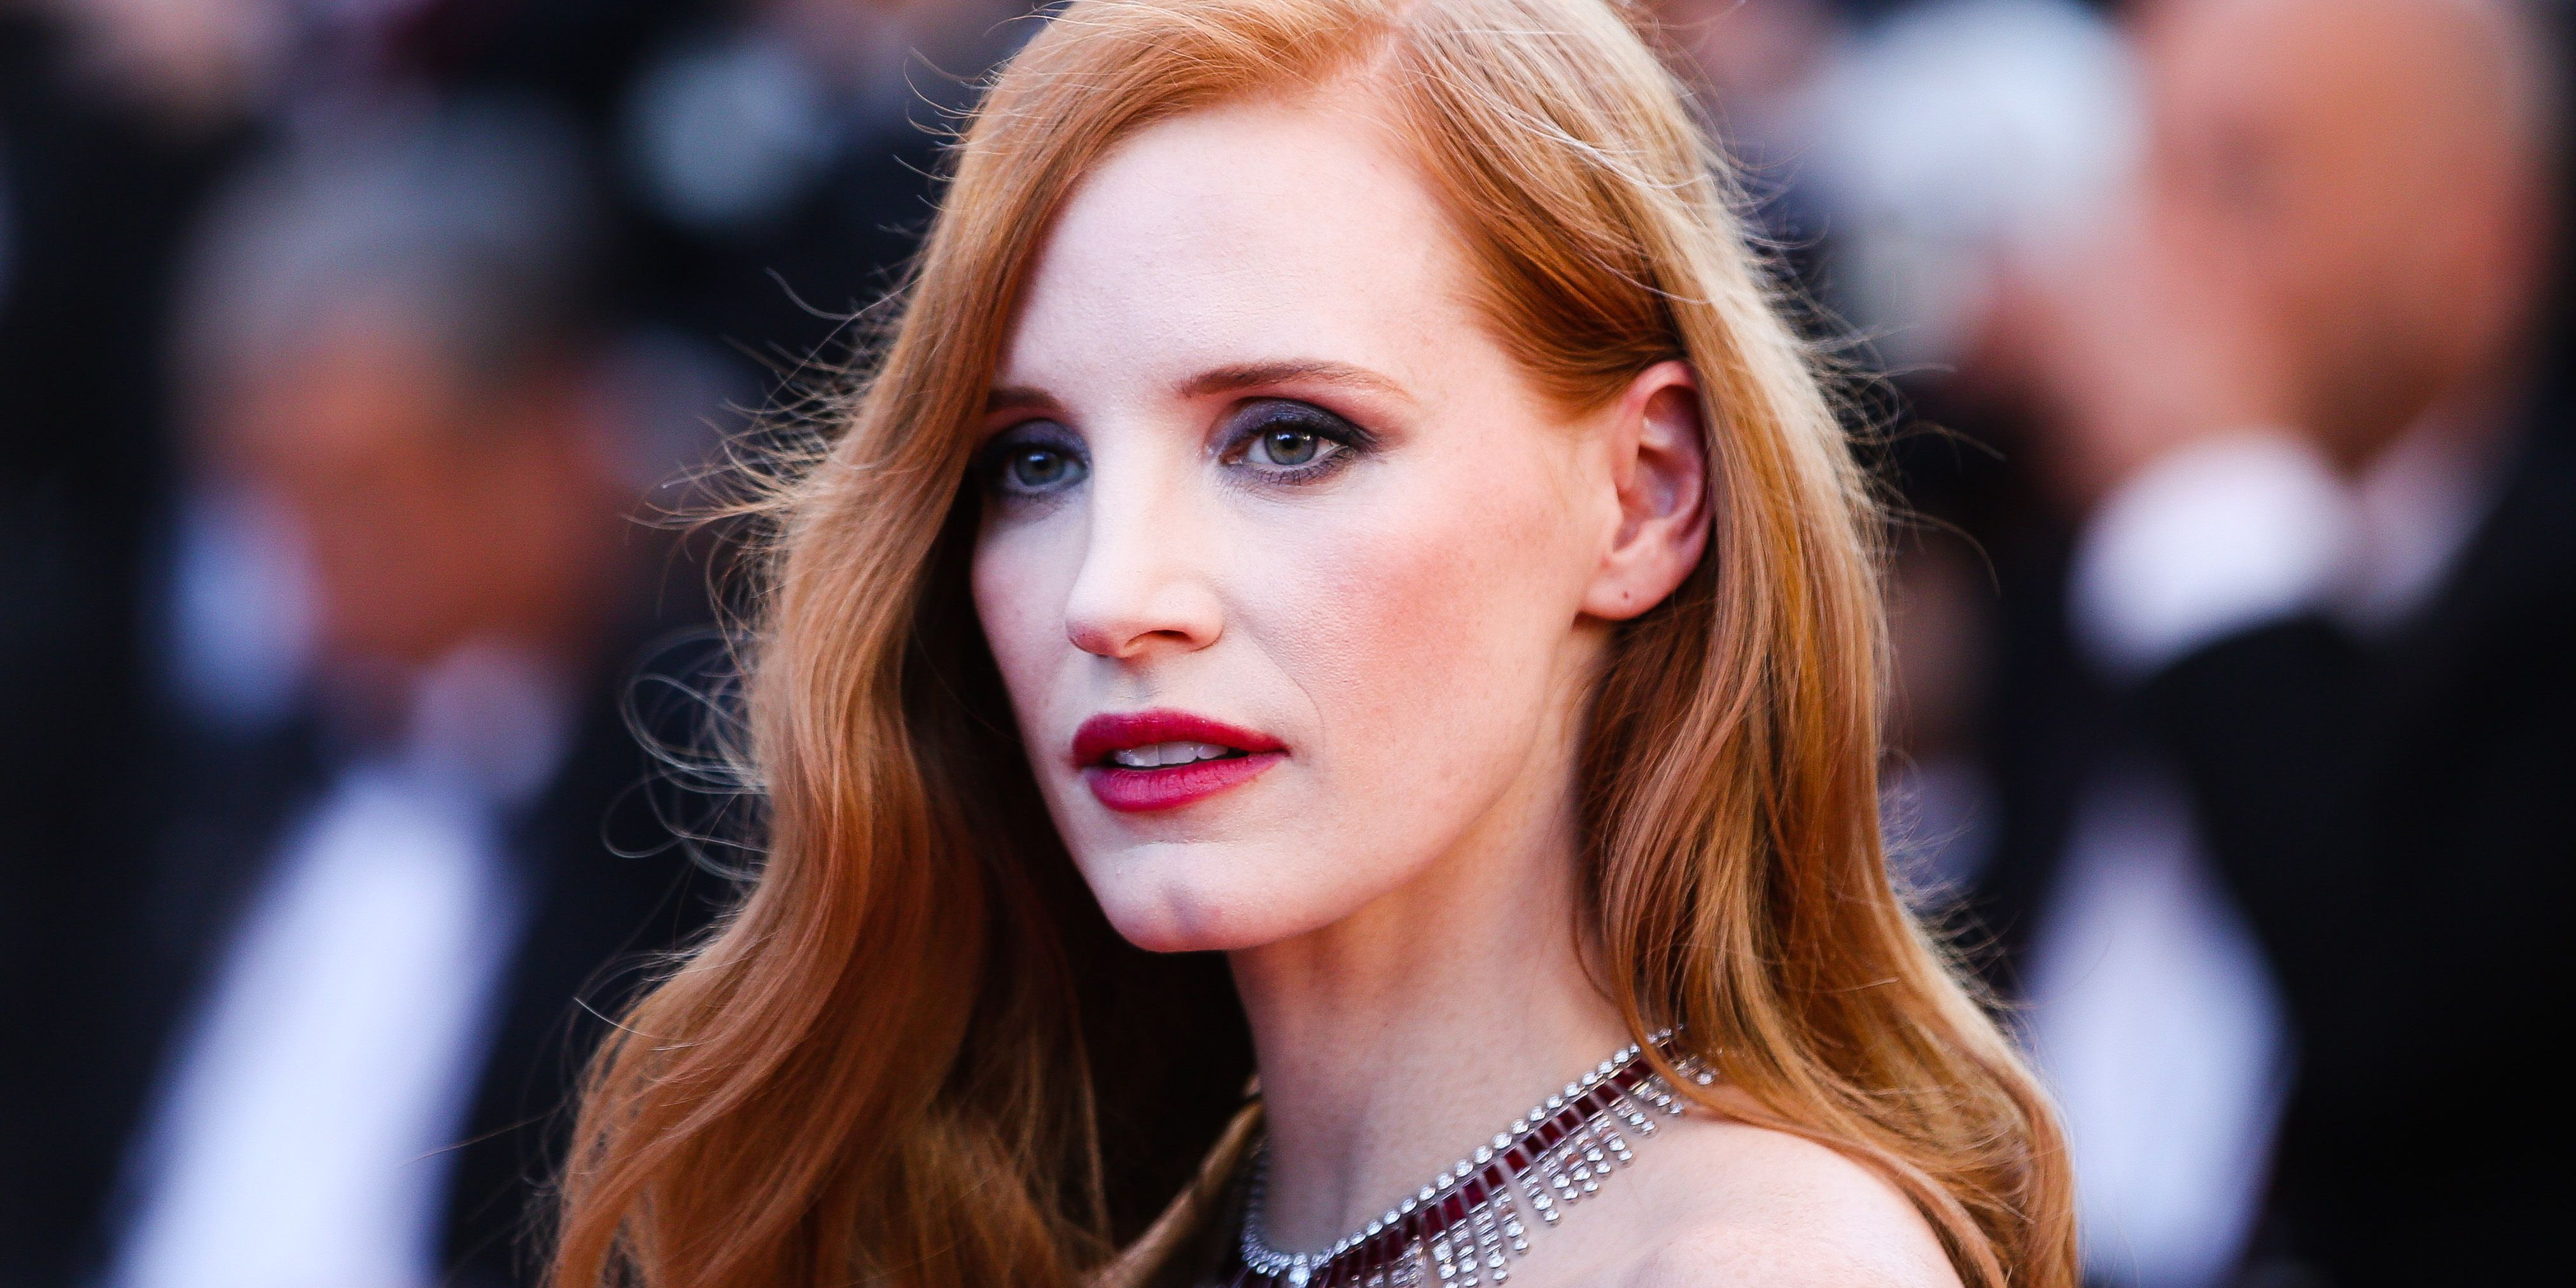 Fotos Jessica Chastain nudes (56 foto and video), Ass, Bikini, Boobs, butt 2019